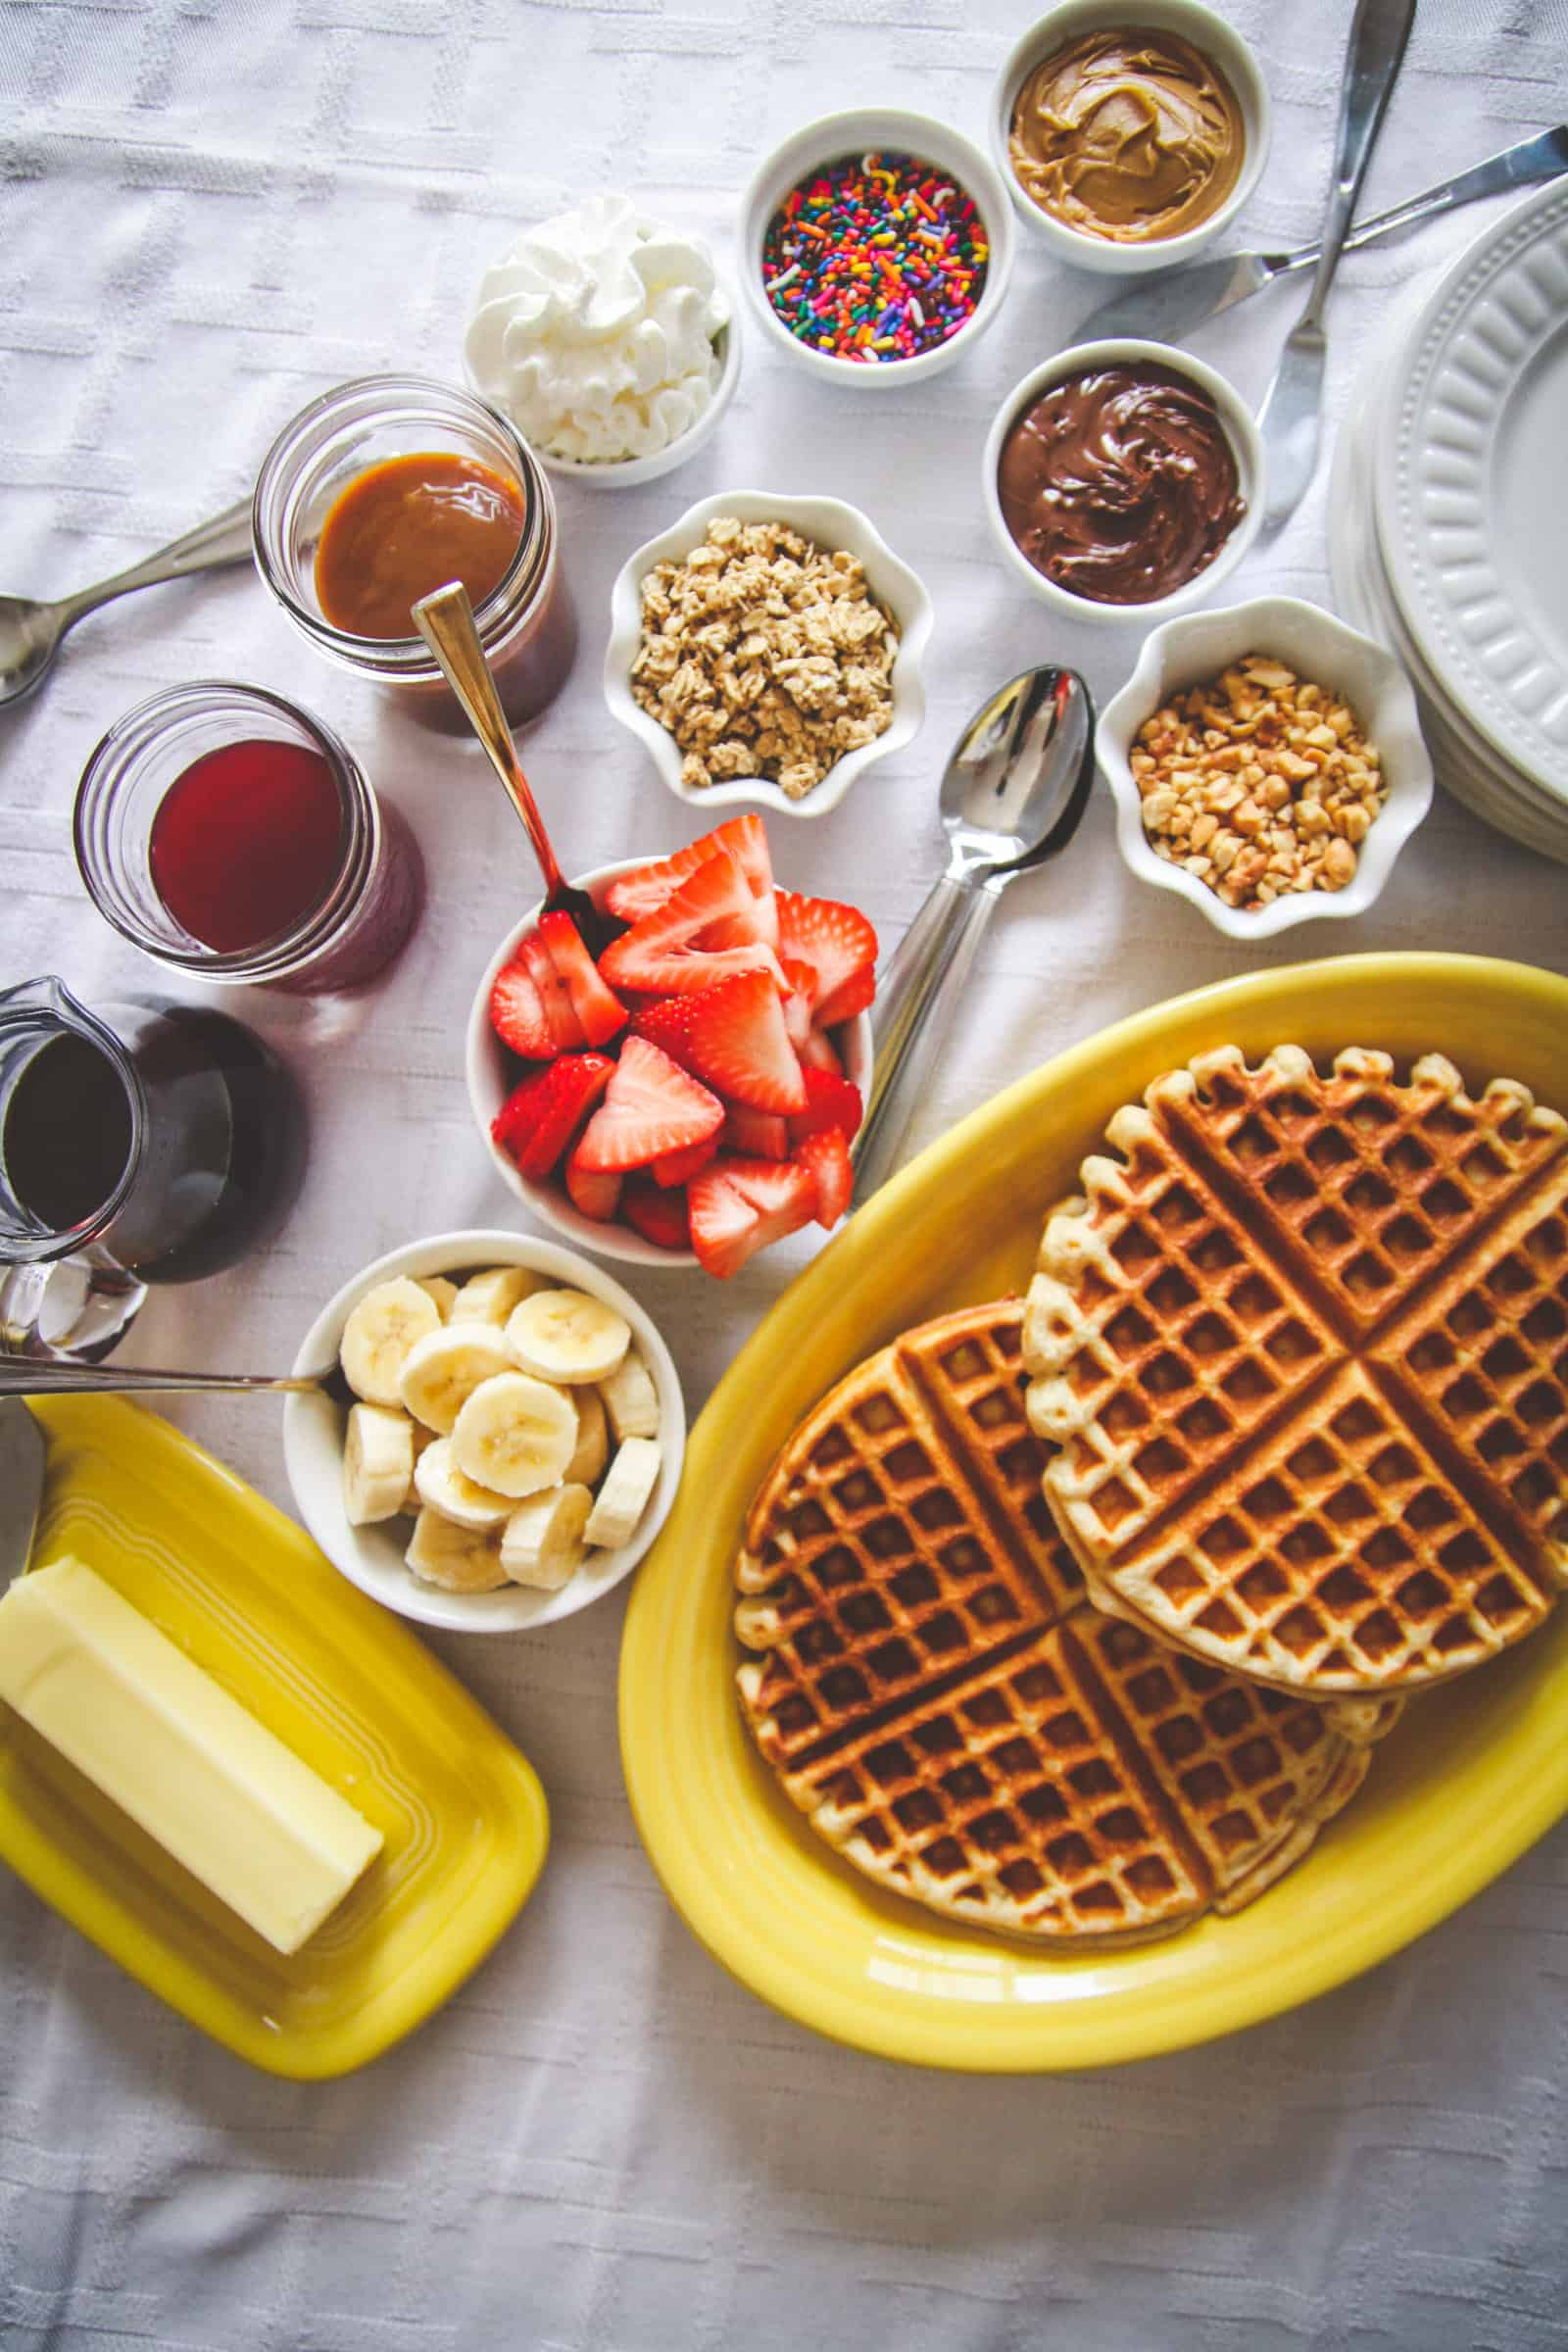 How to make the best waffle bar for brunch